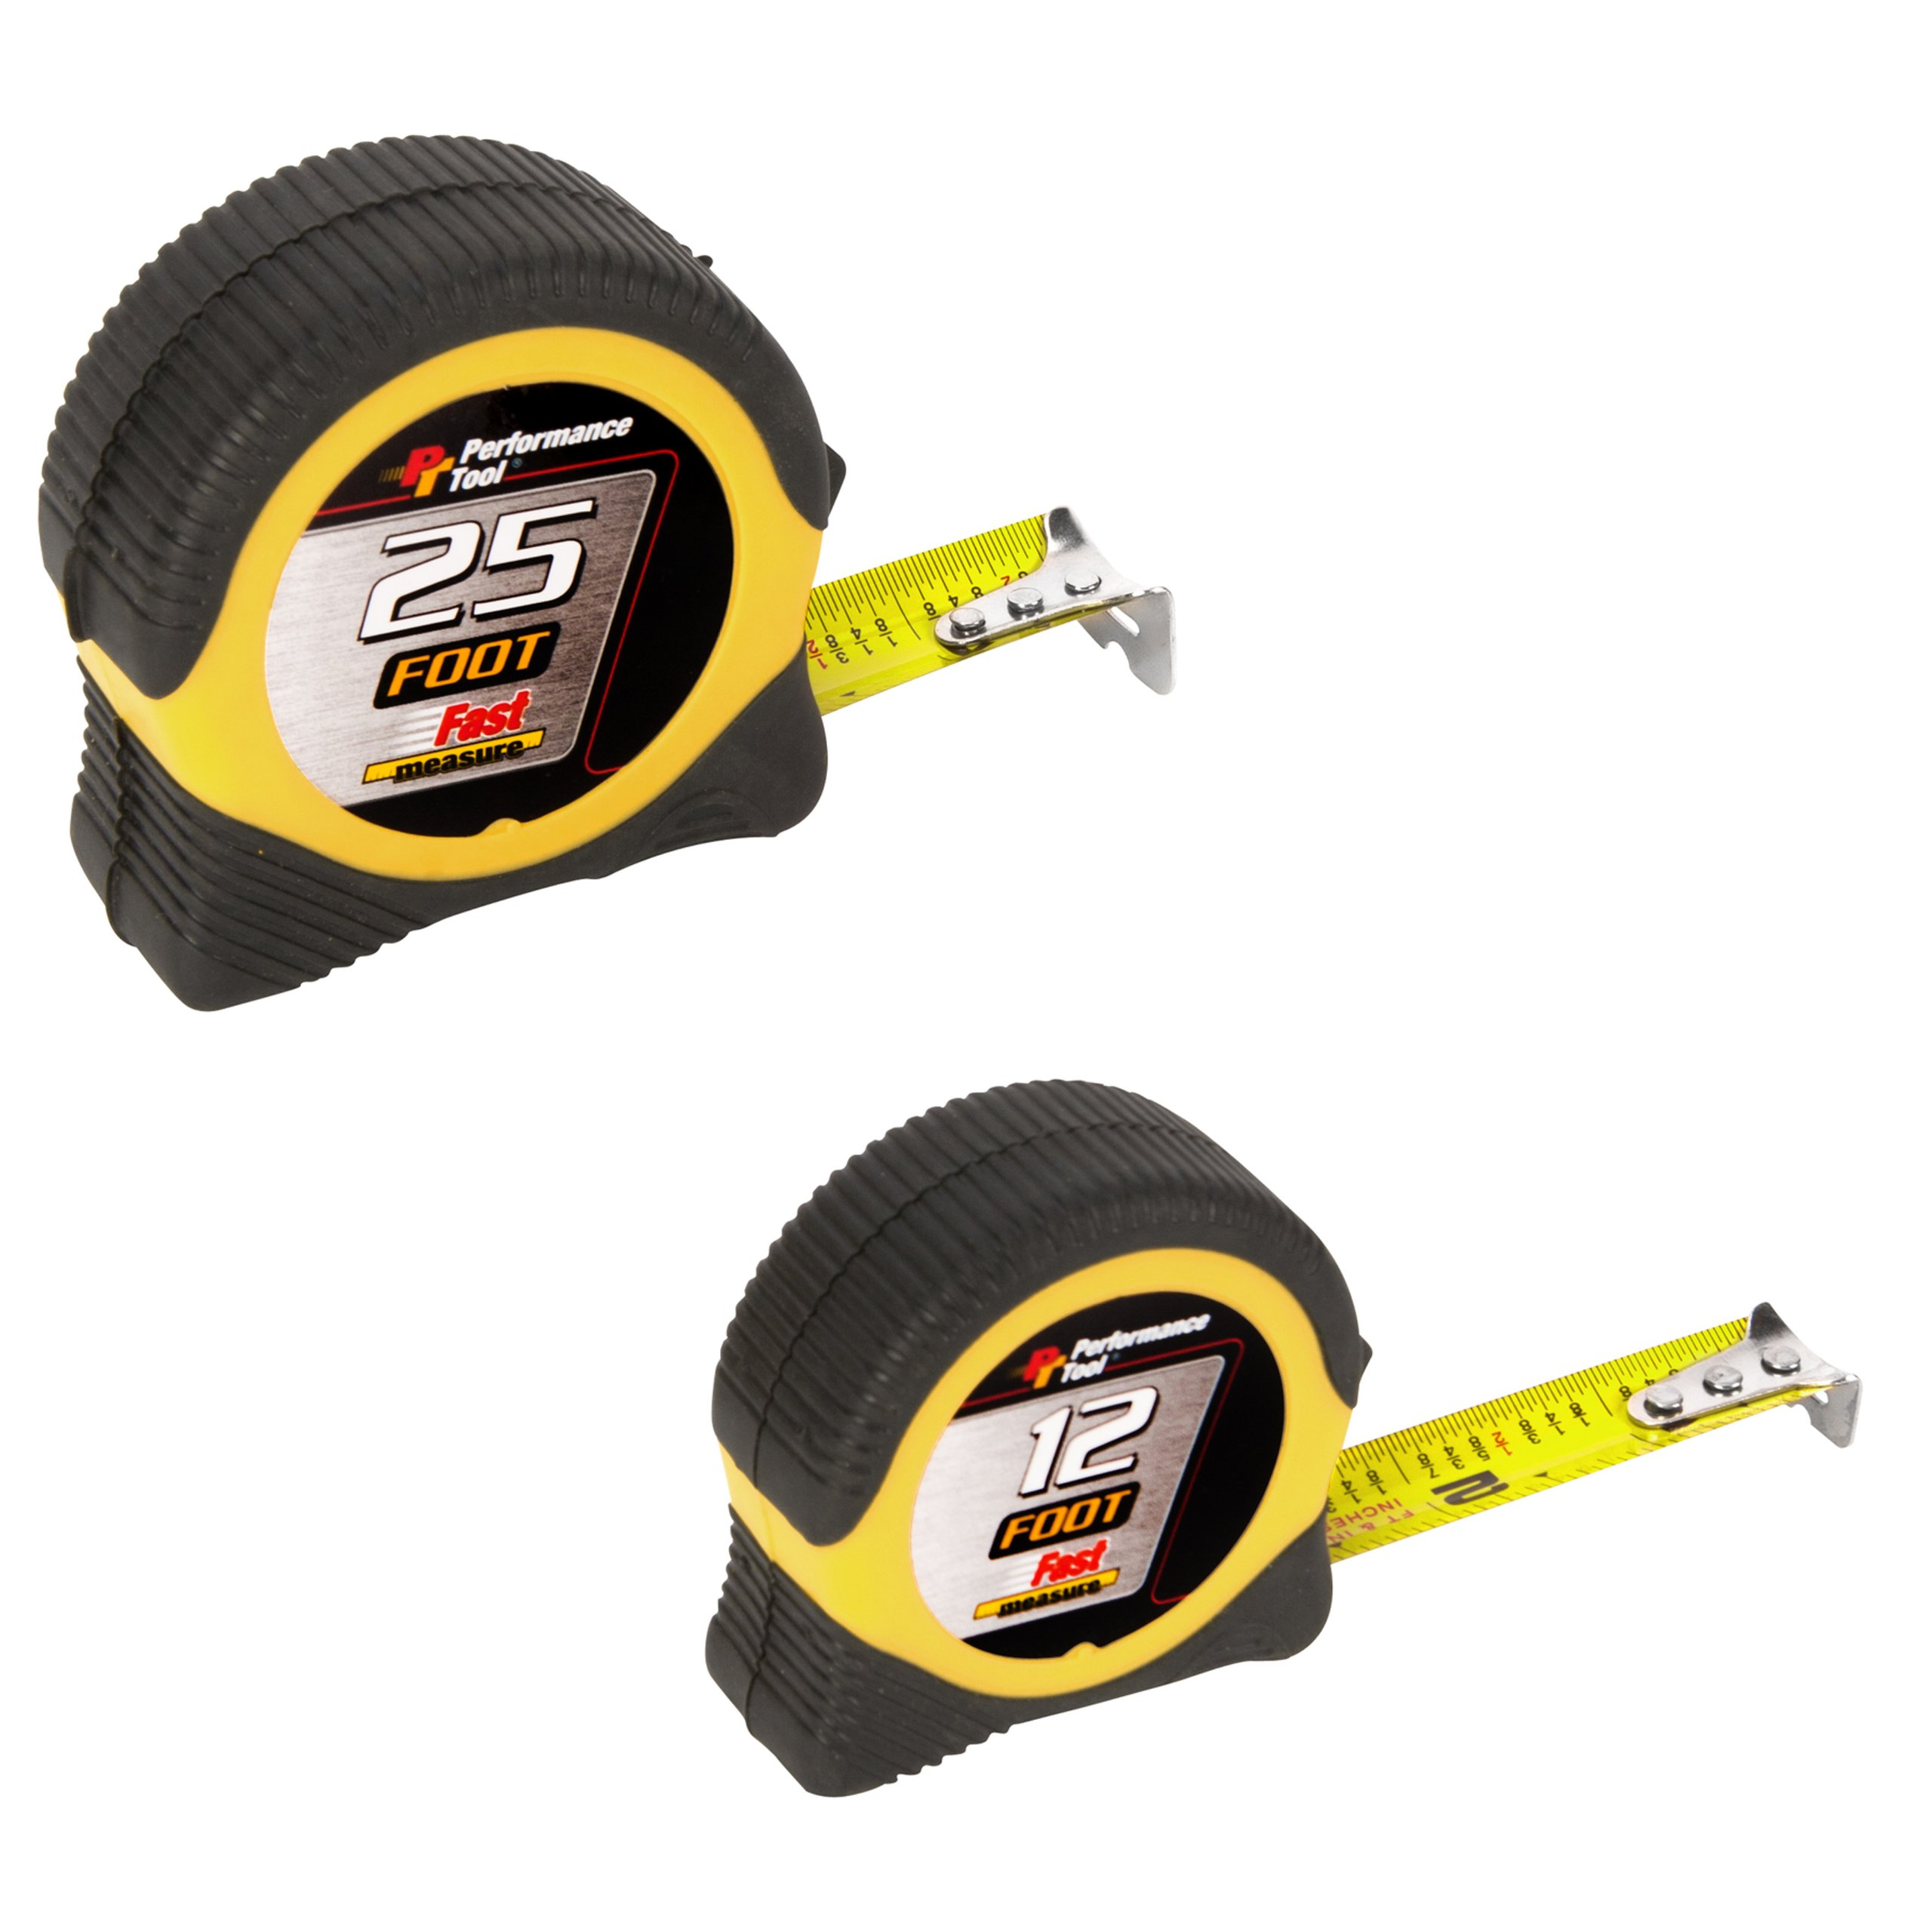 Performance Tool W5025BP 25-foot and 12-foot Tape Measure Combo